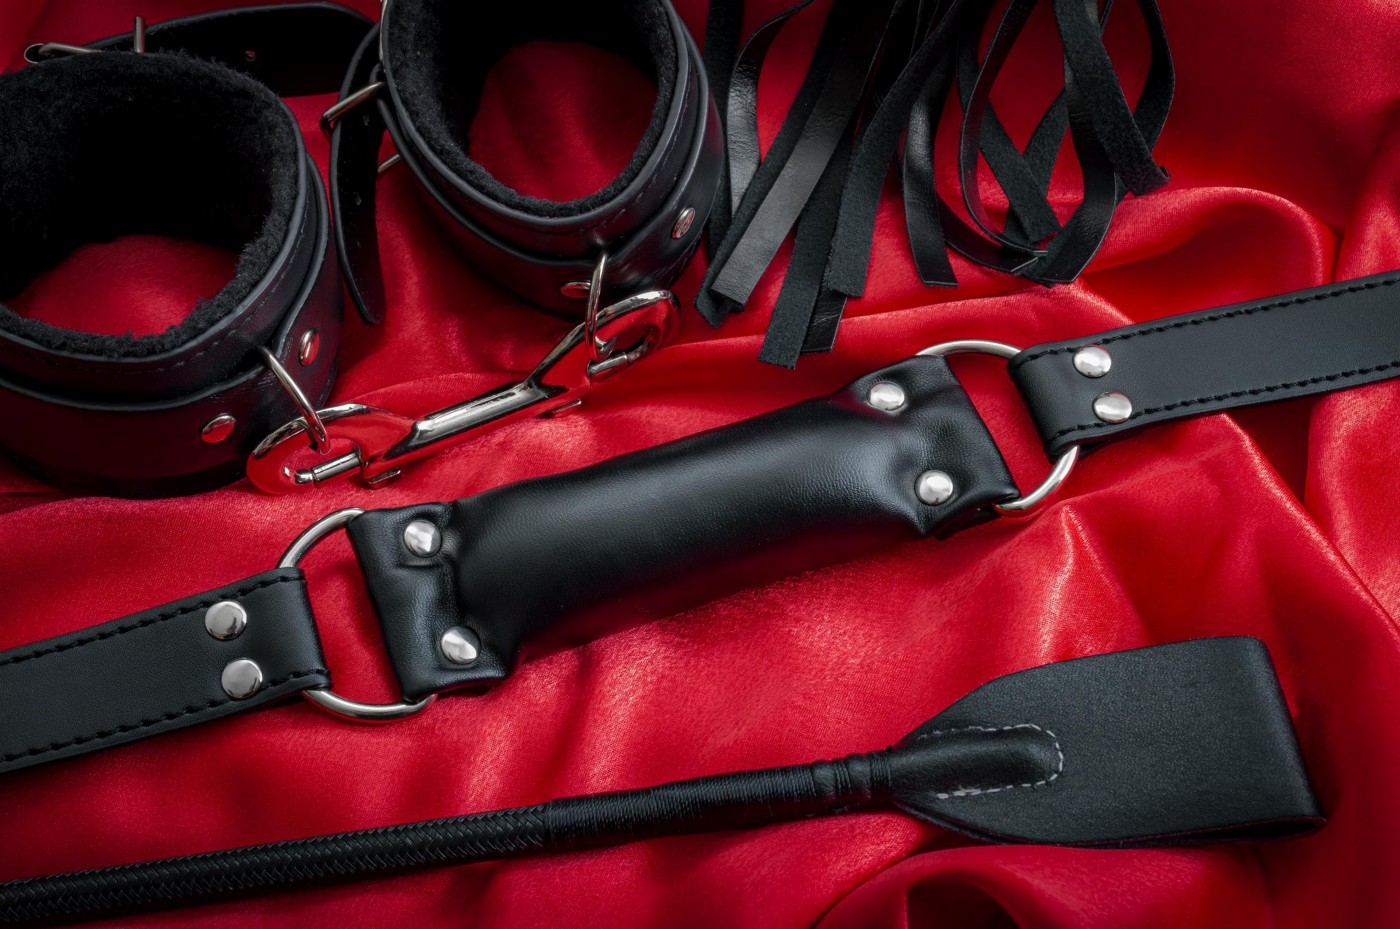 BDSM toys on red sheets